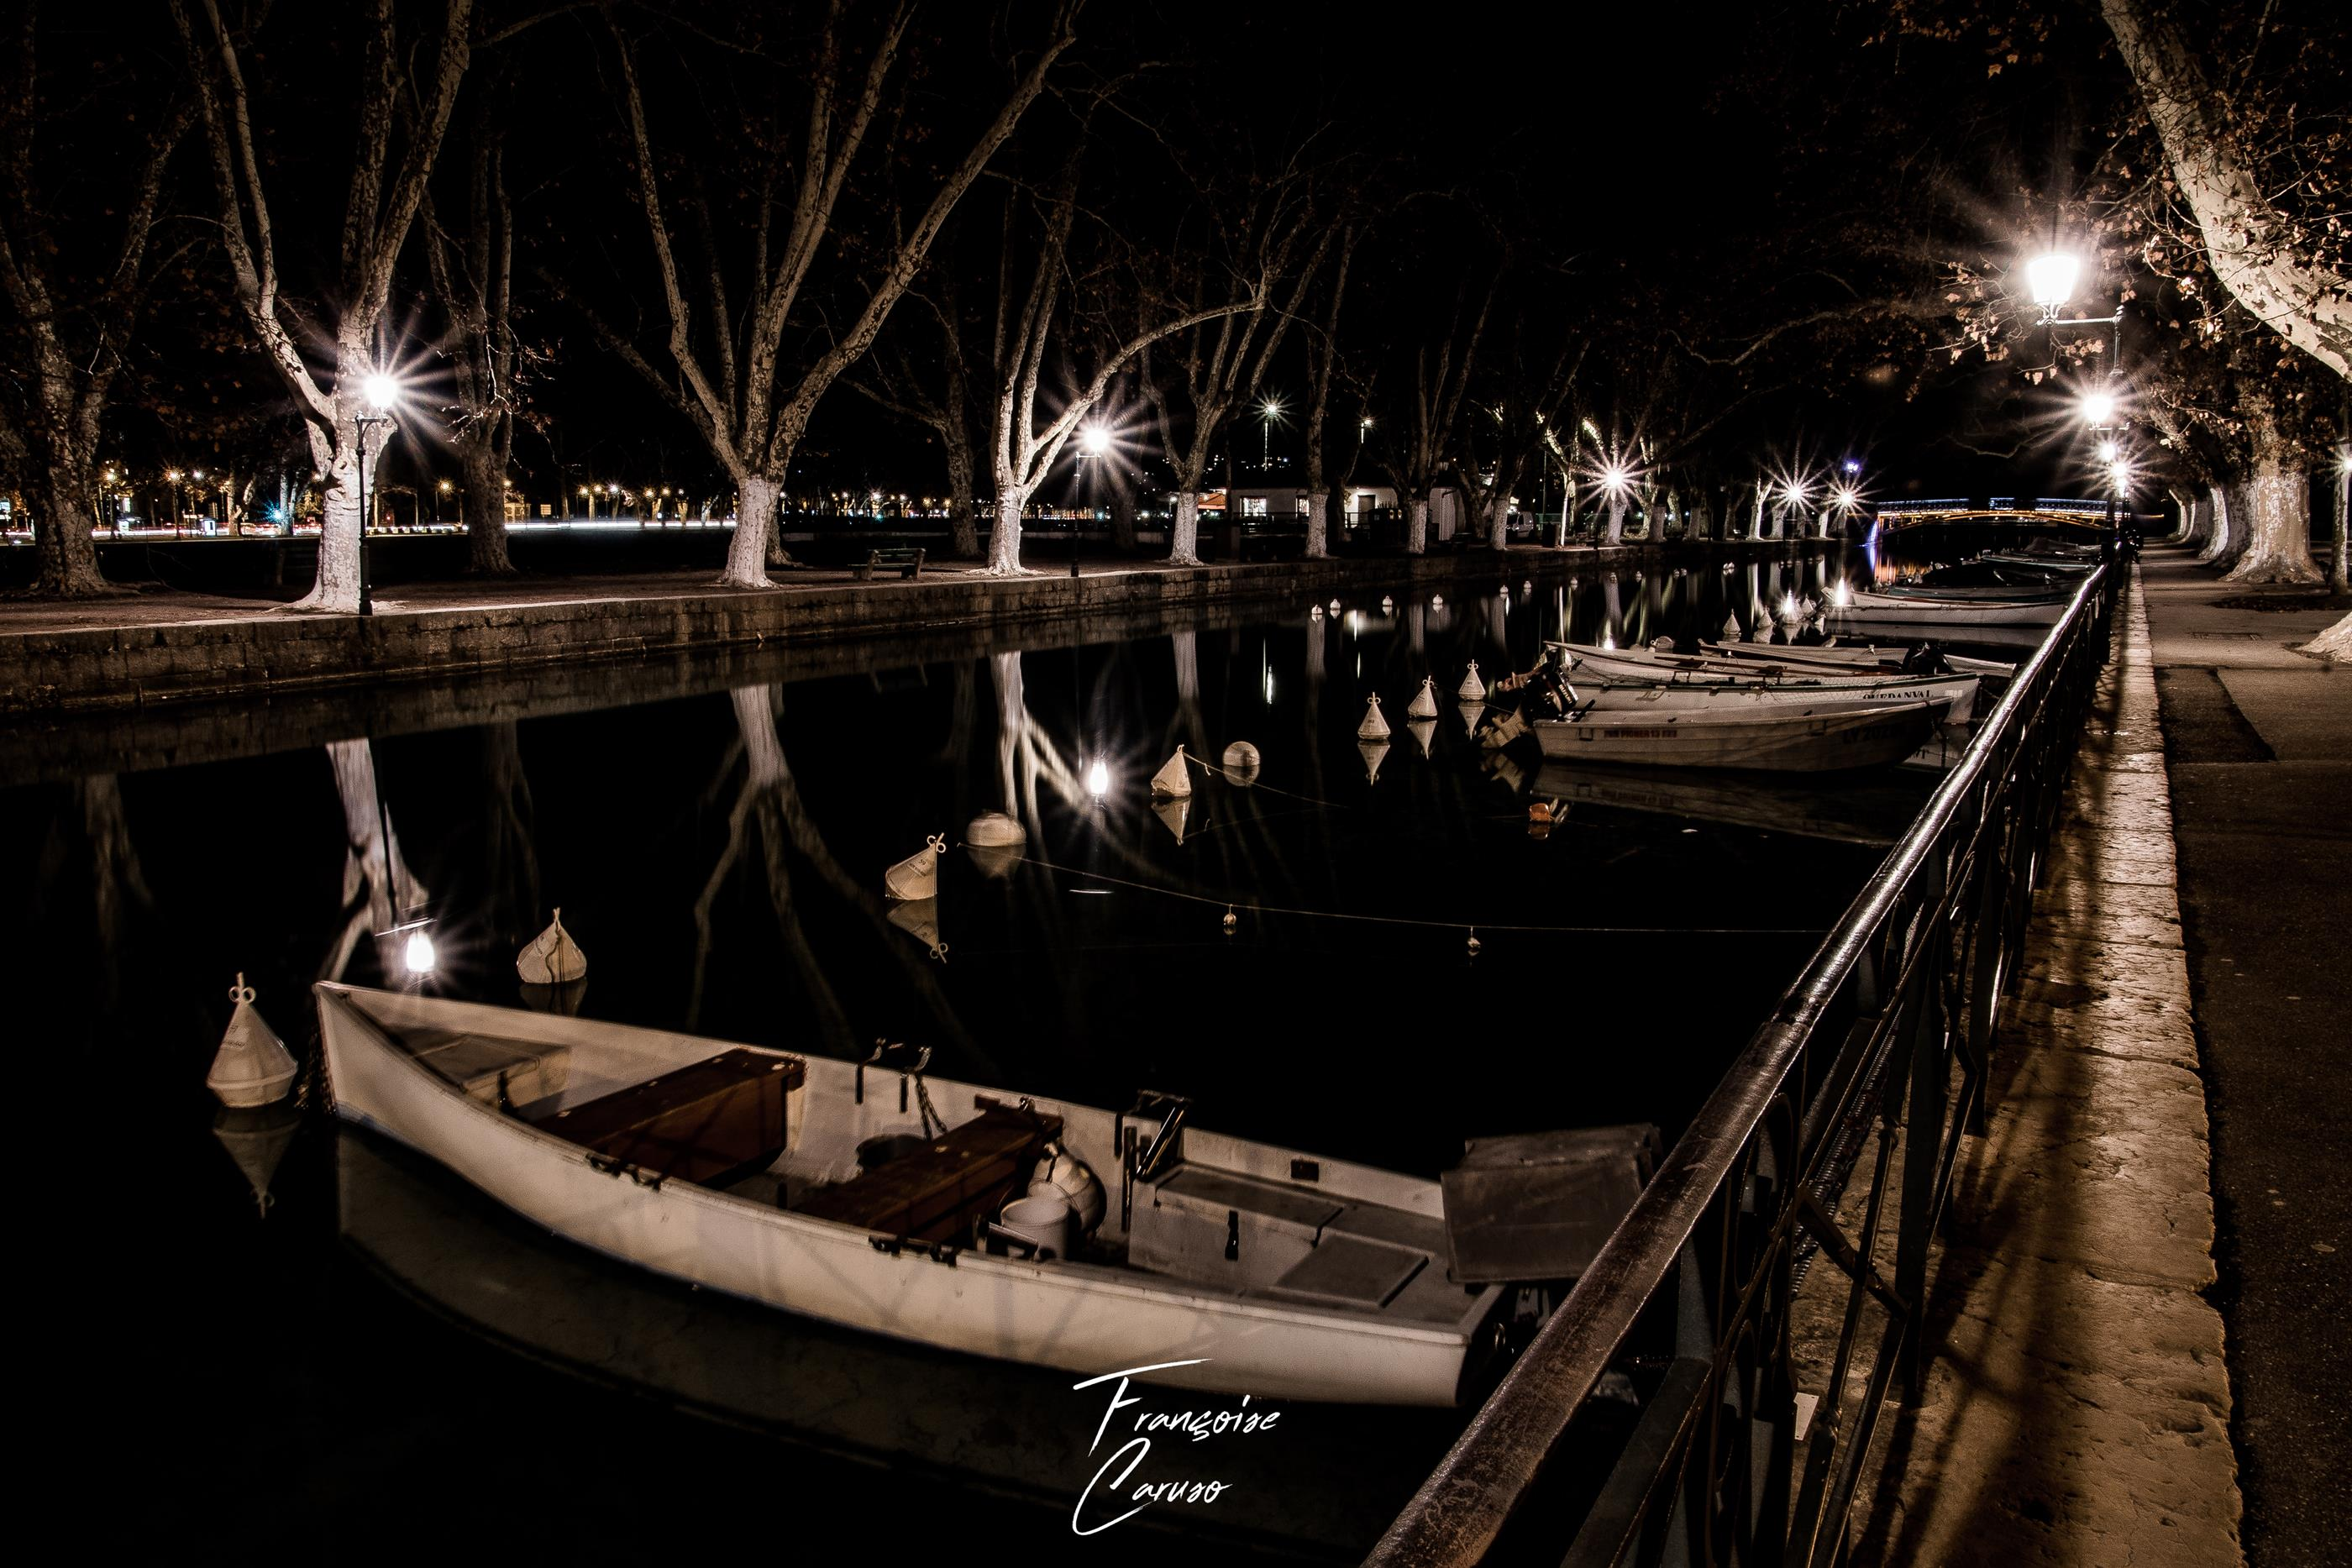 Annecy by night - ville d'annecy